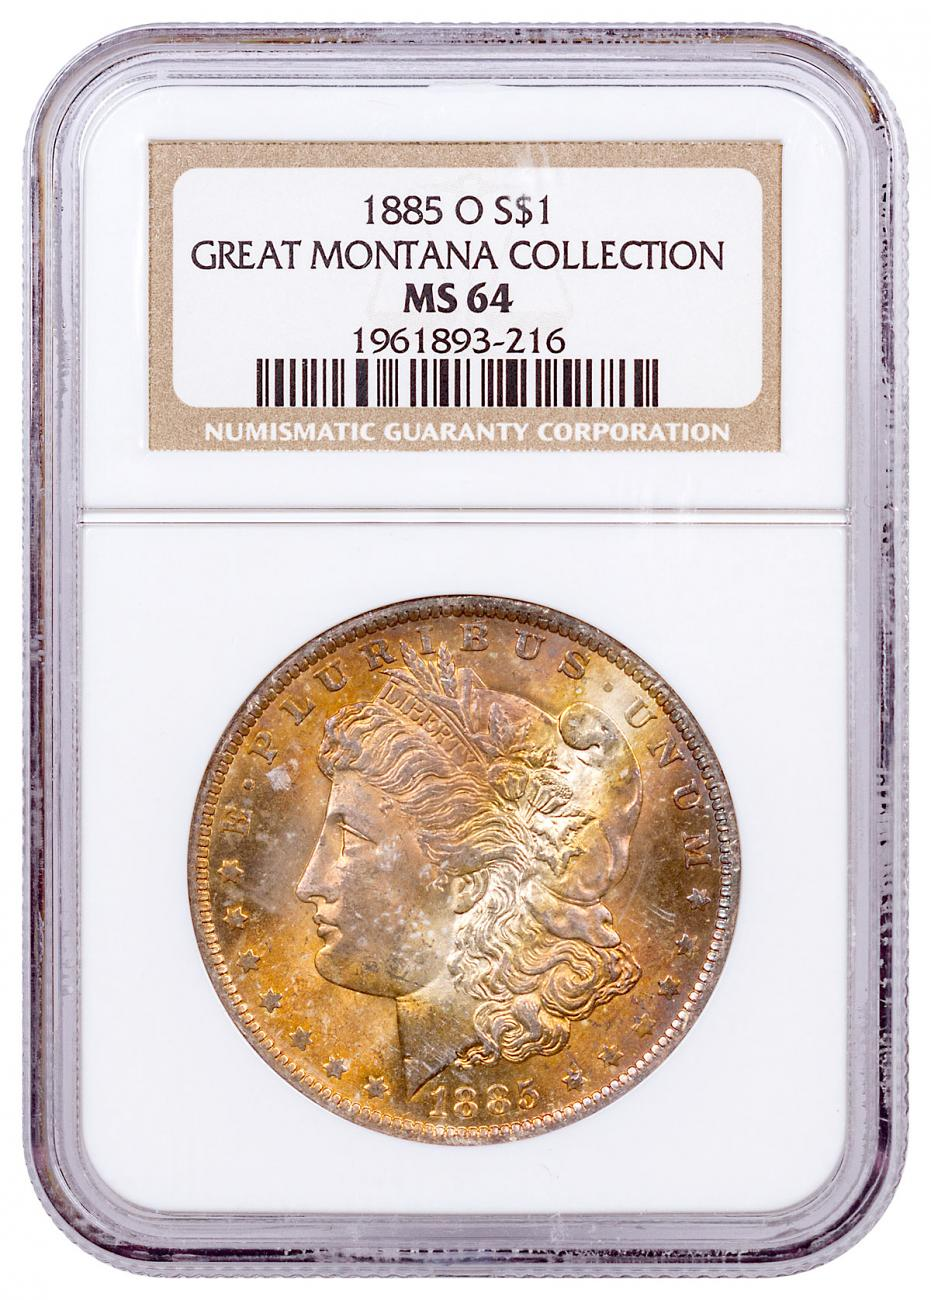 1885-O Morgan Silver Dollar From the Great Montana Collection NGC MS64 CPCR 3216